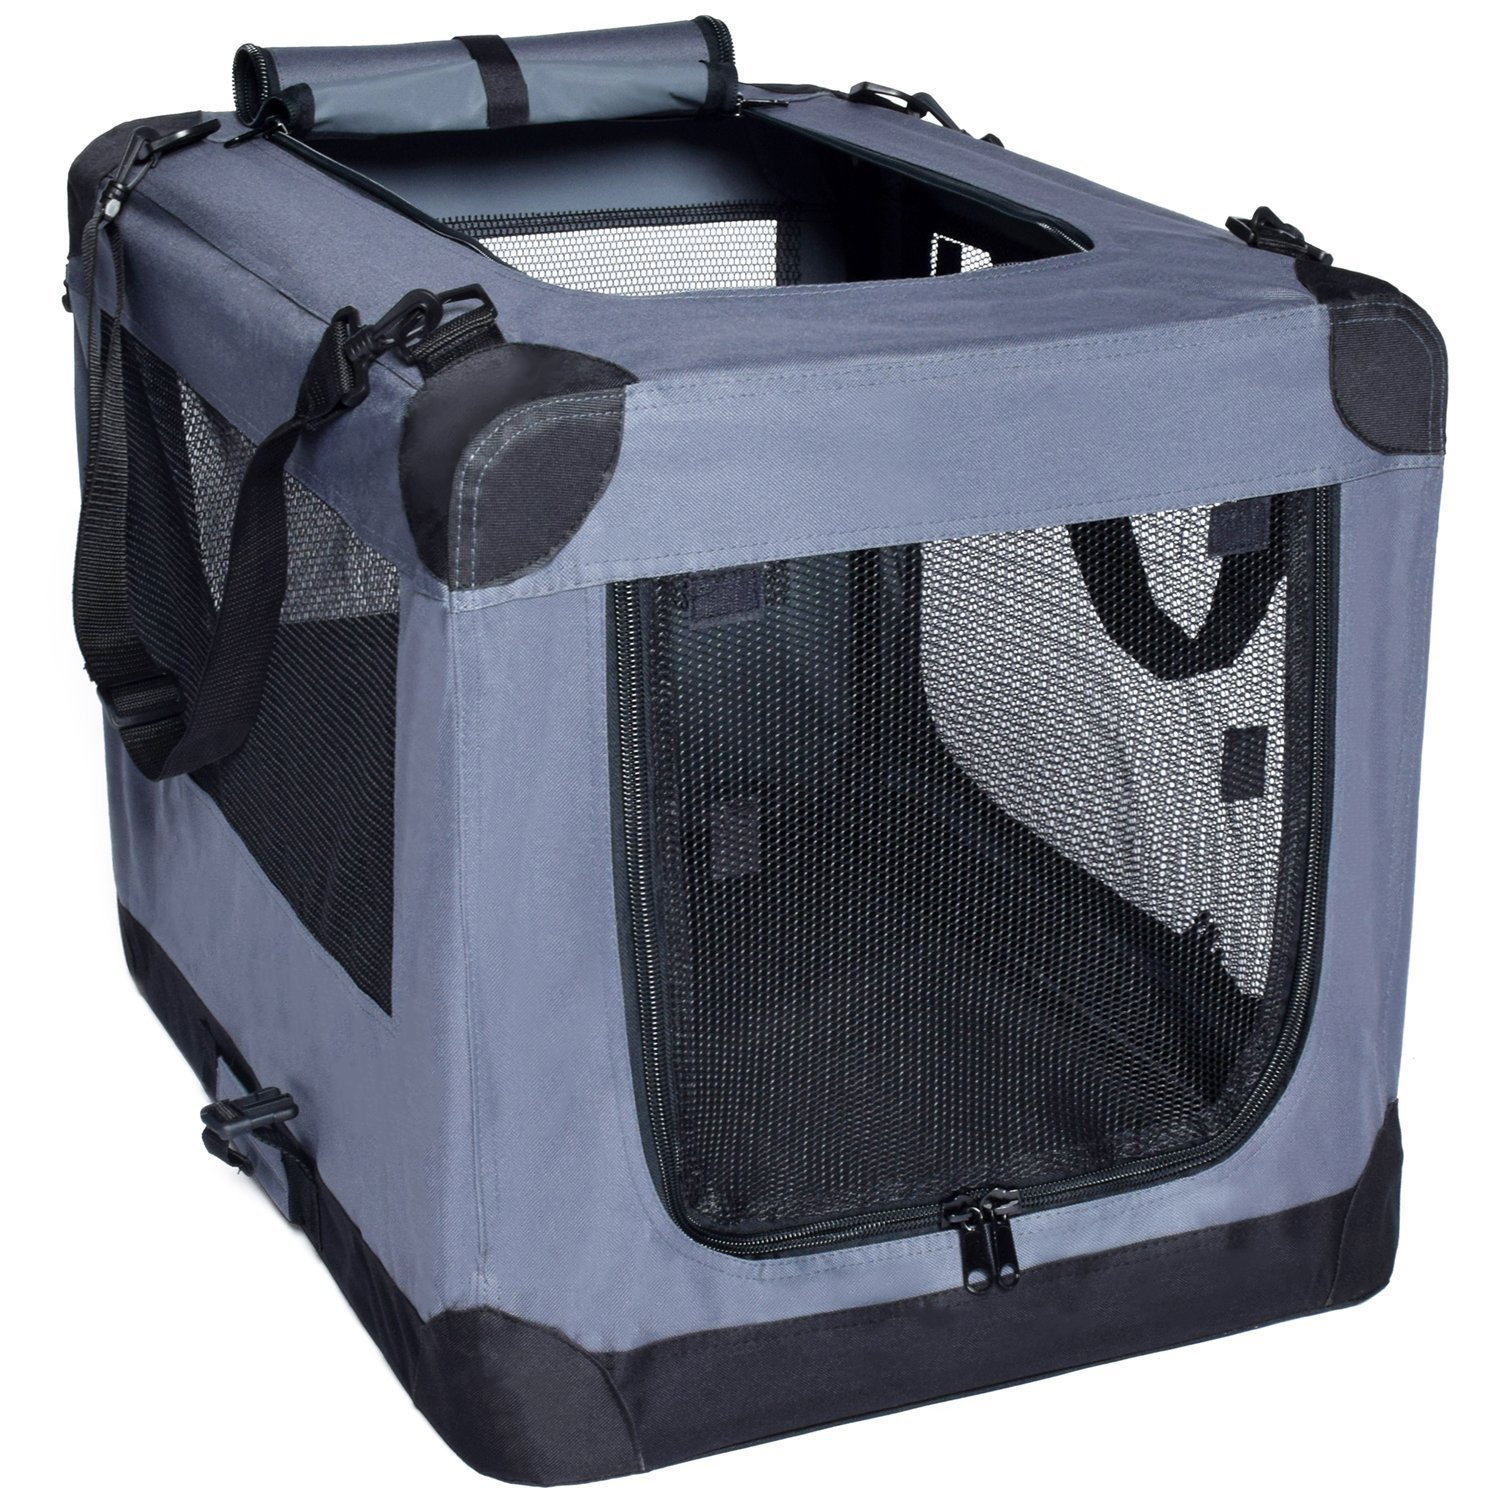 Arf Pets Dog Soft Crate Kennel for Pet Indoor Home & Outdoor Use - Soft Sided 3 Door Folding Travel Carrier with Straps